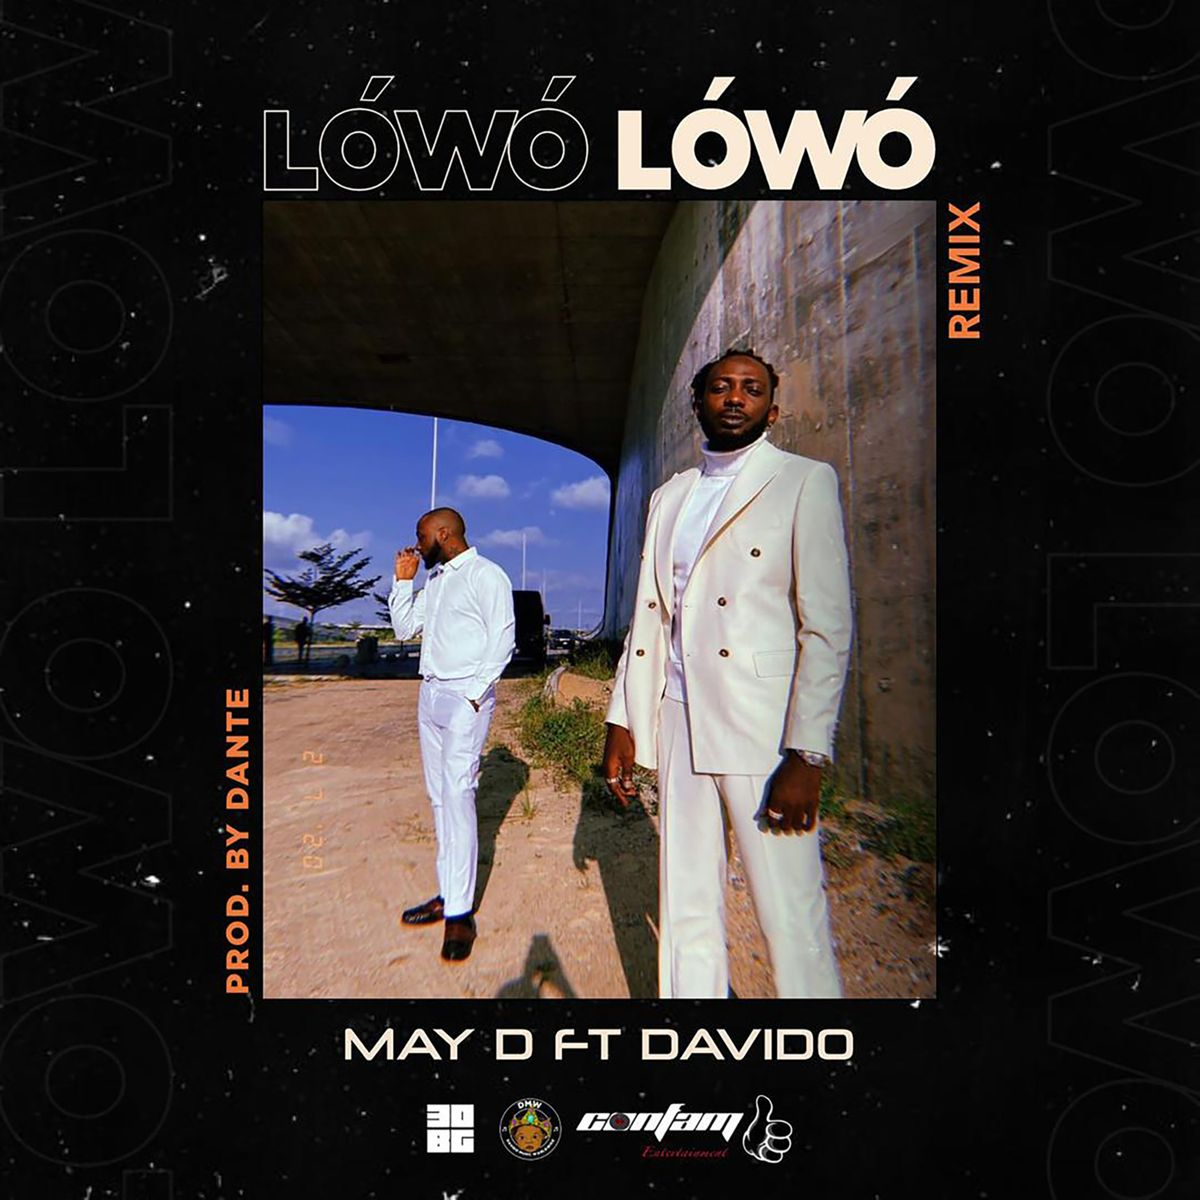 May D & Davido - Lowo Lowo (Remix)